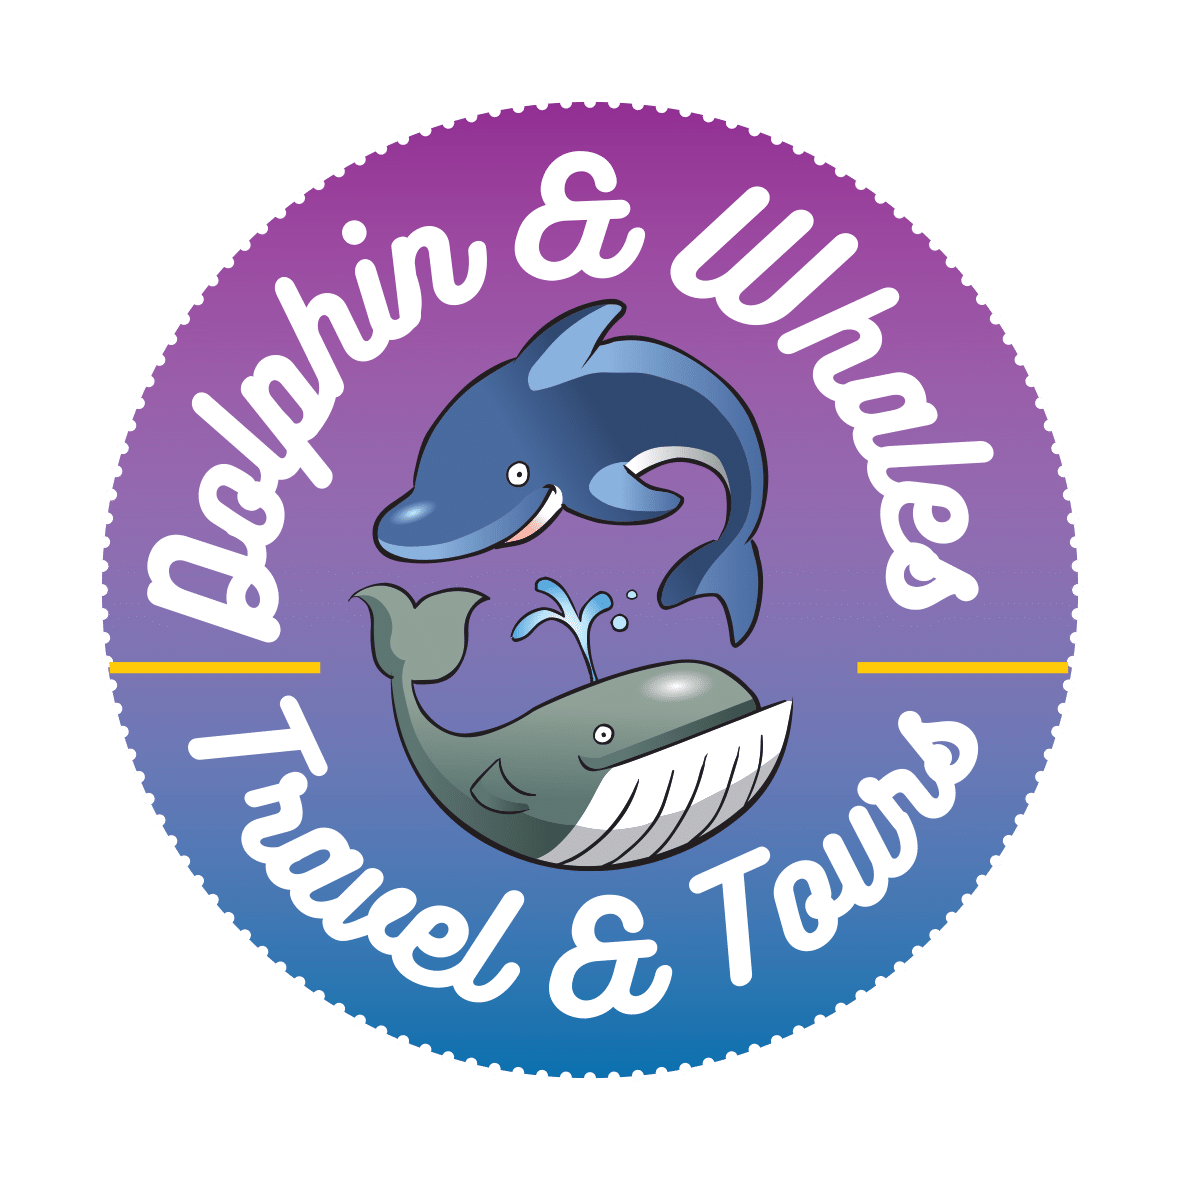 Dolphin and Whales Travel and Tours